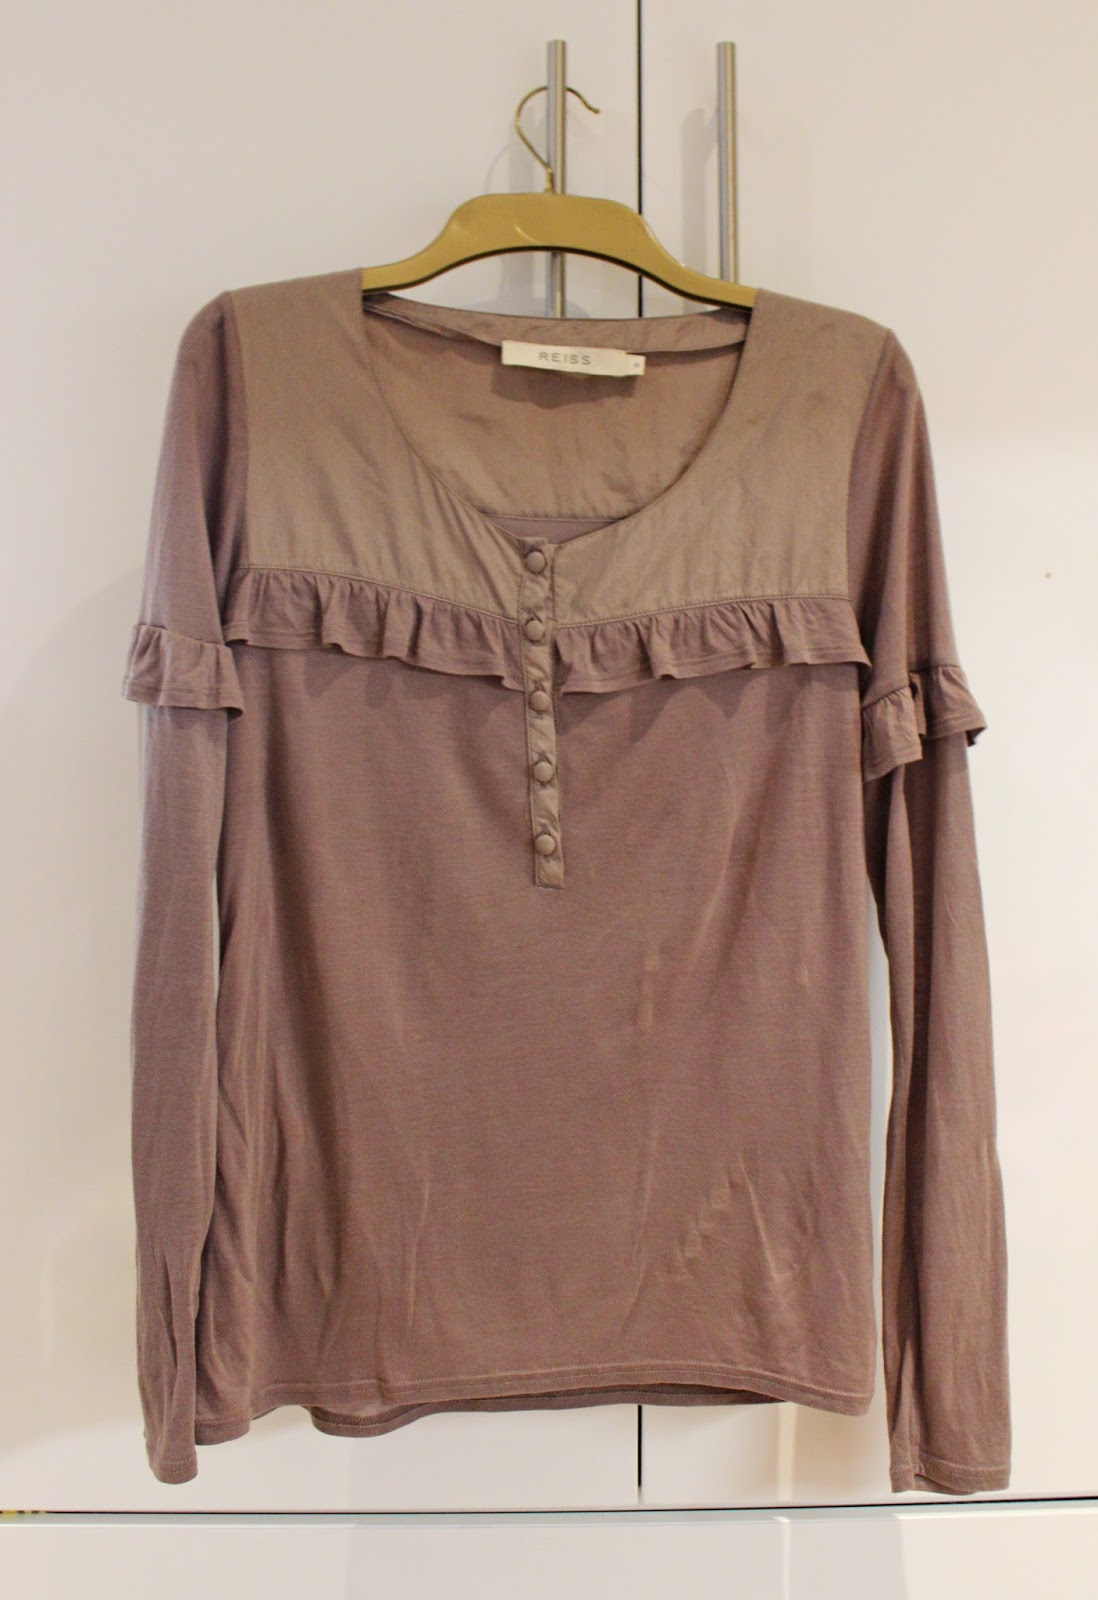 Reiss Jersey Ruffled Top - £20